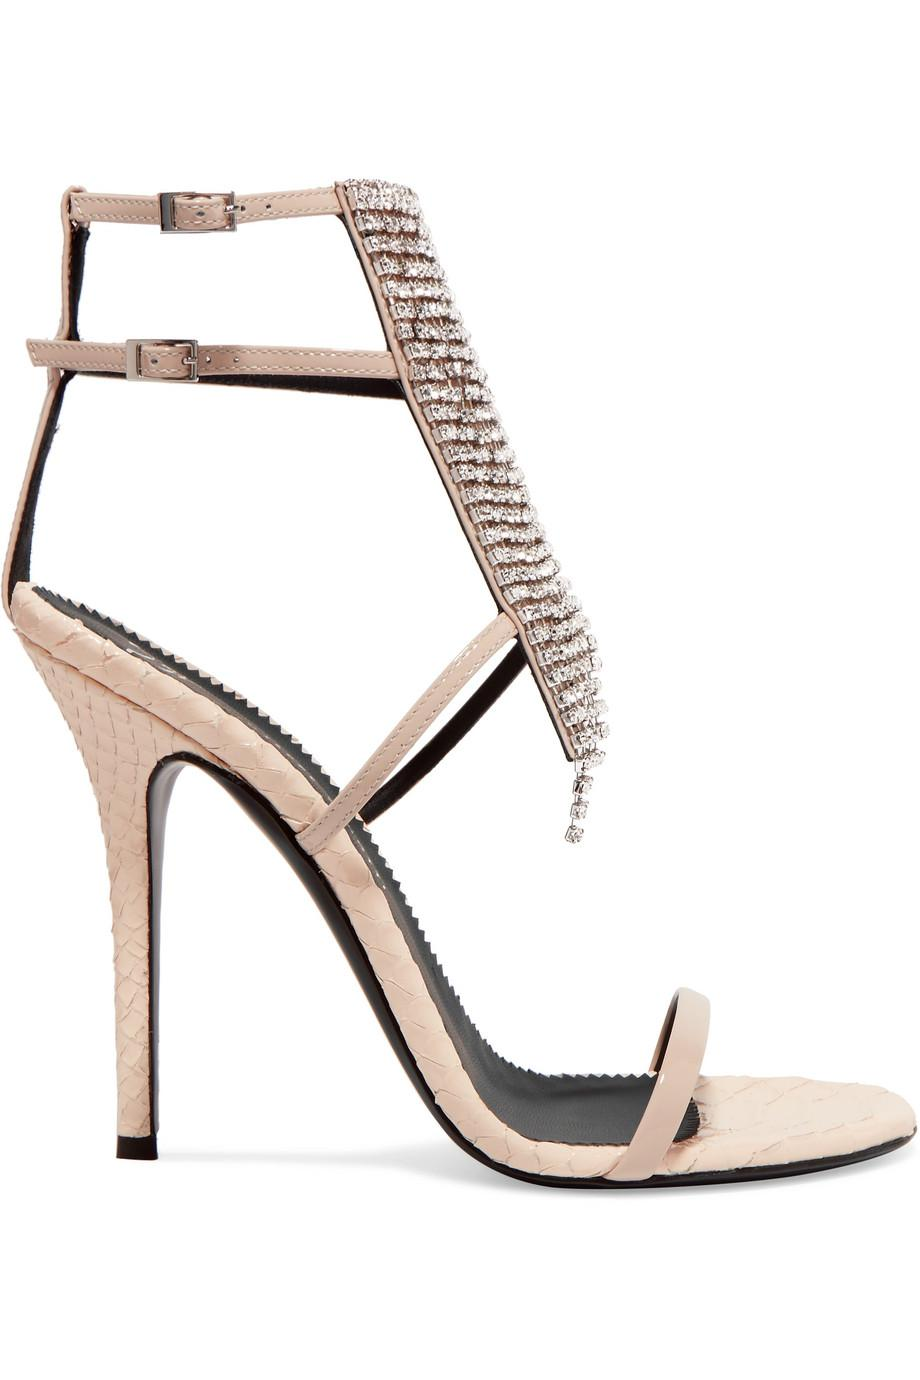 Alien Crystal-embellished Python-effect And Patent-leather Sandals - Beige Giuseppe Zanotti gC7MyDQY